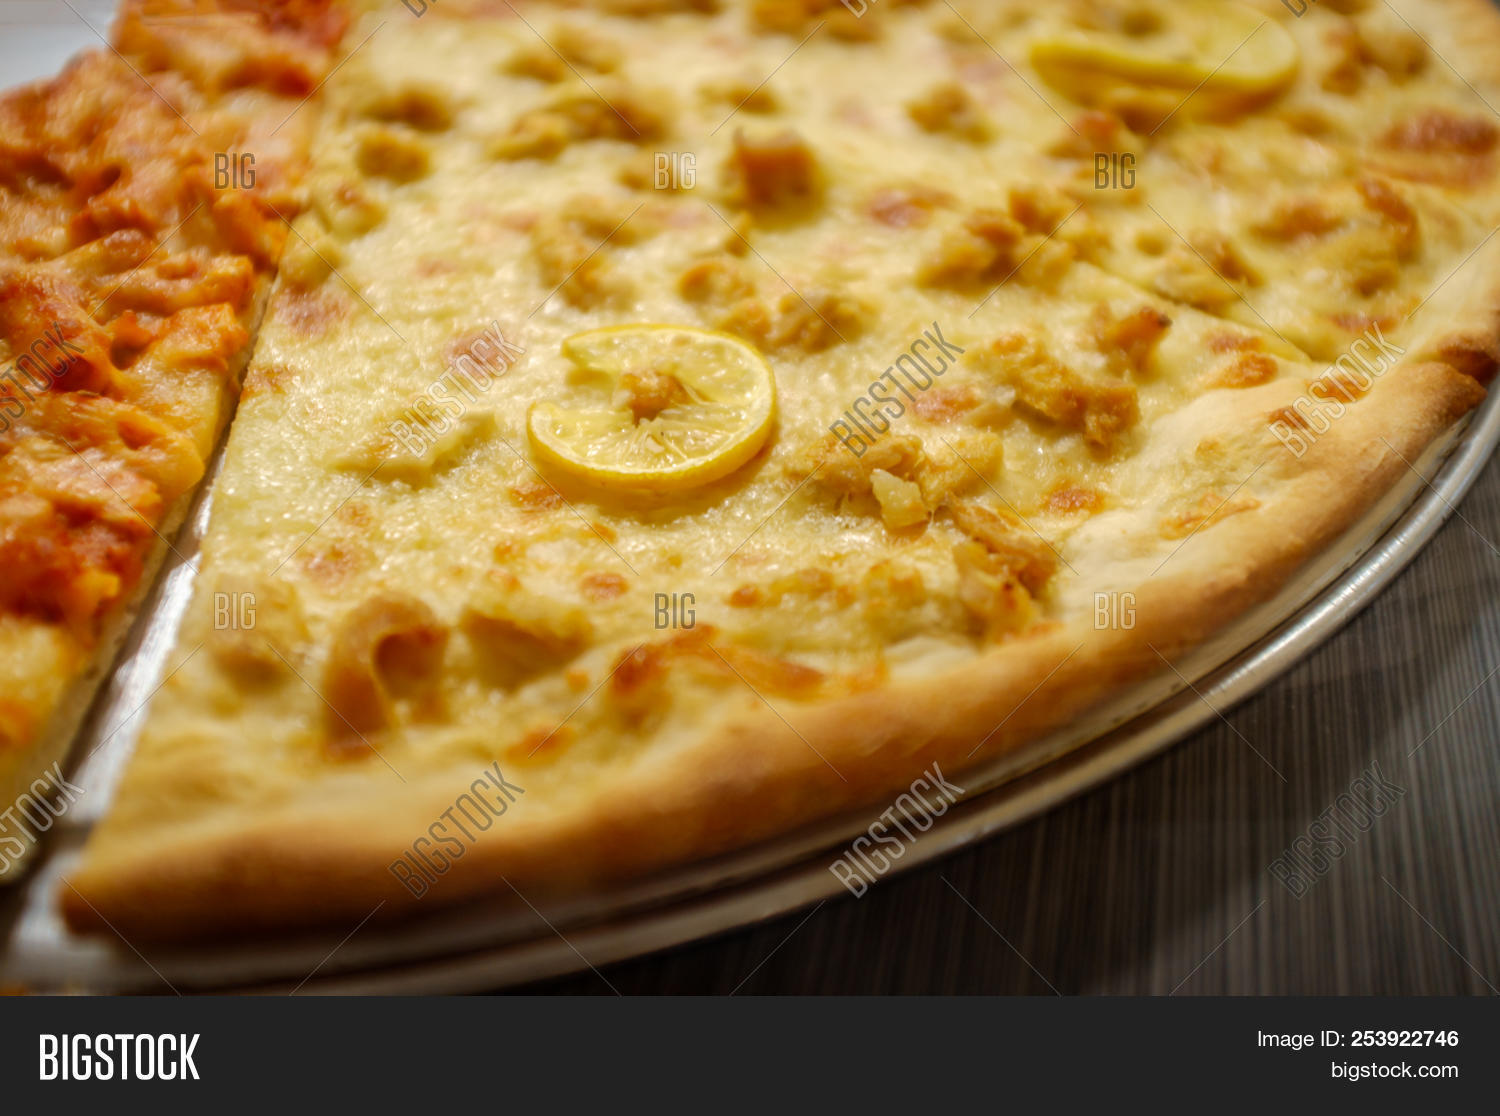 Large Slices Of Cheese Pizza With Chicken Francese Topping